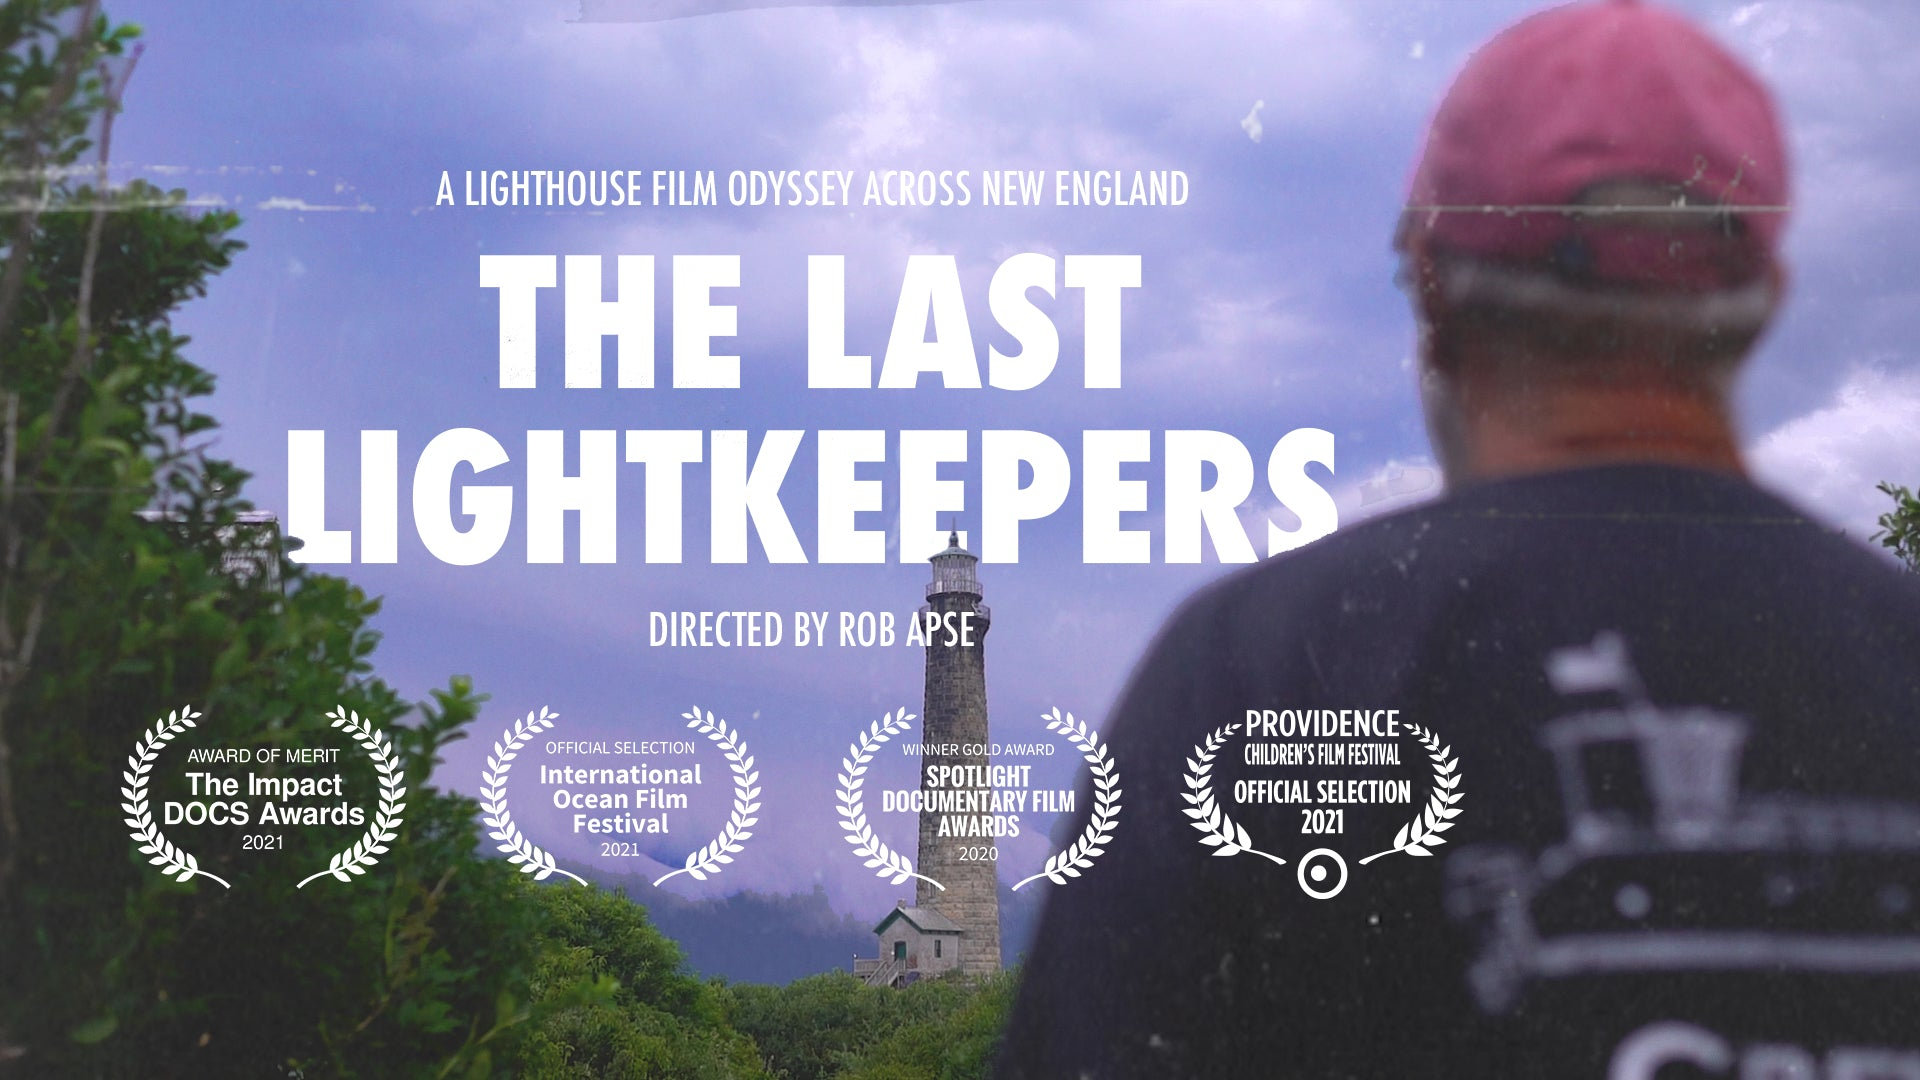 The Last Lightkeepers